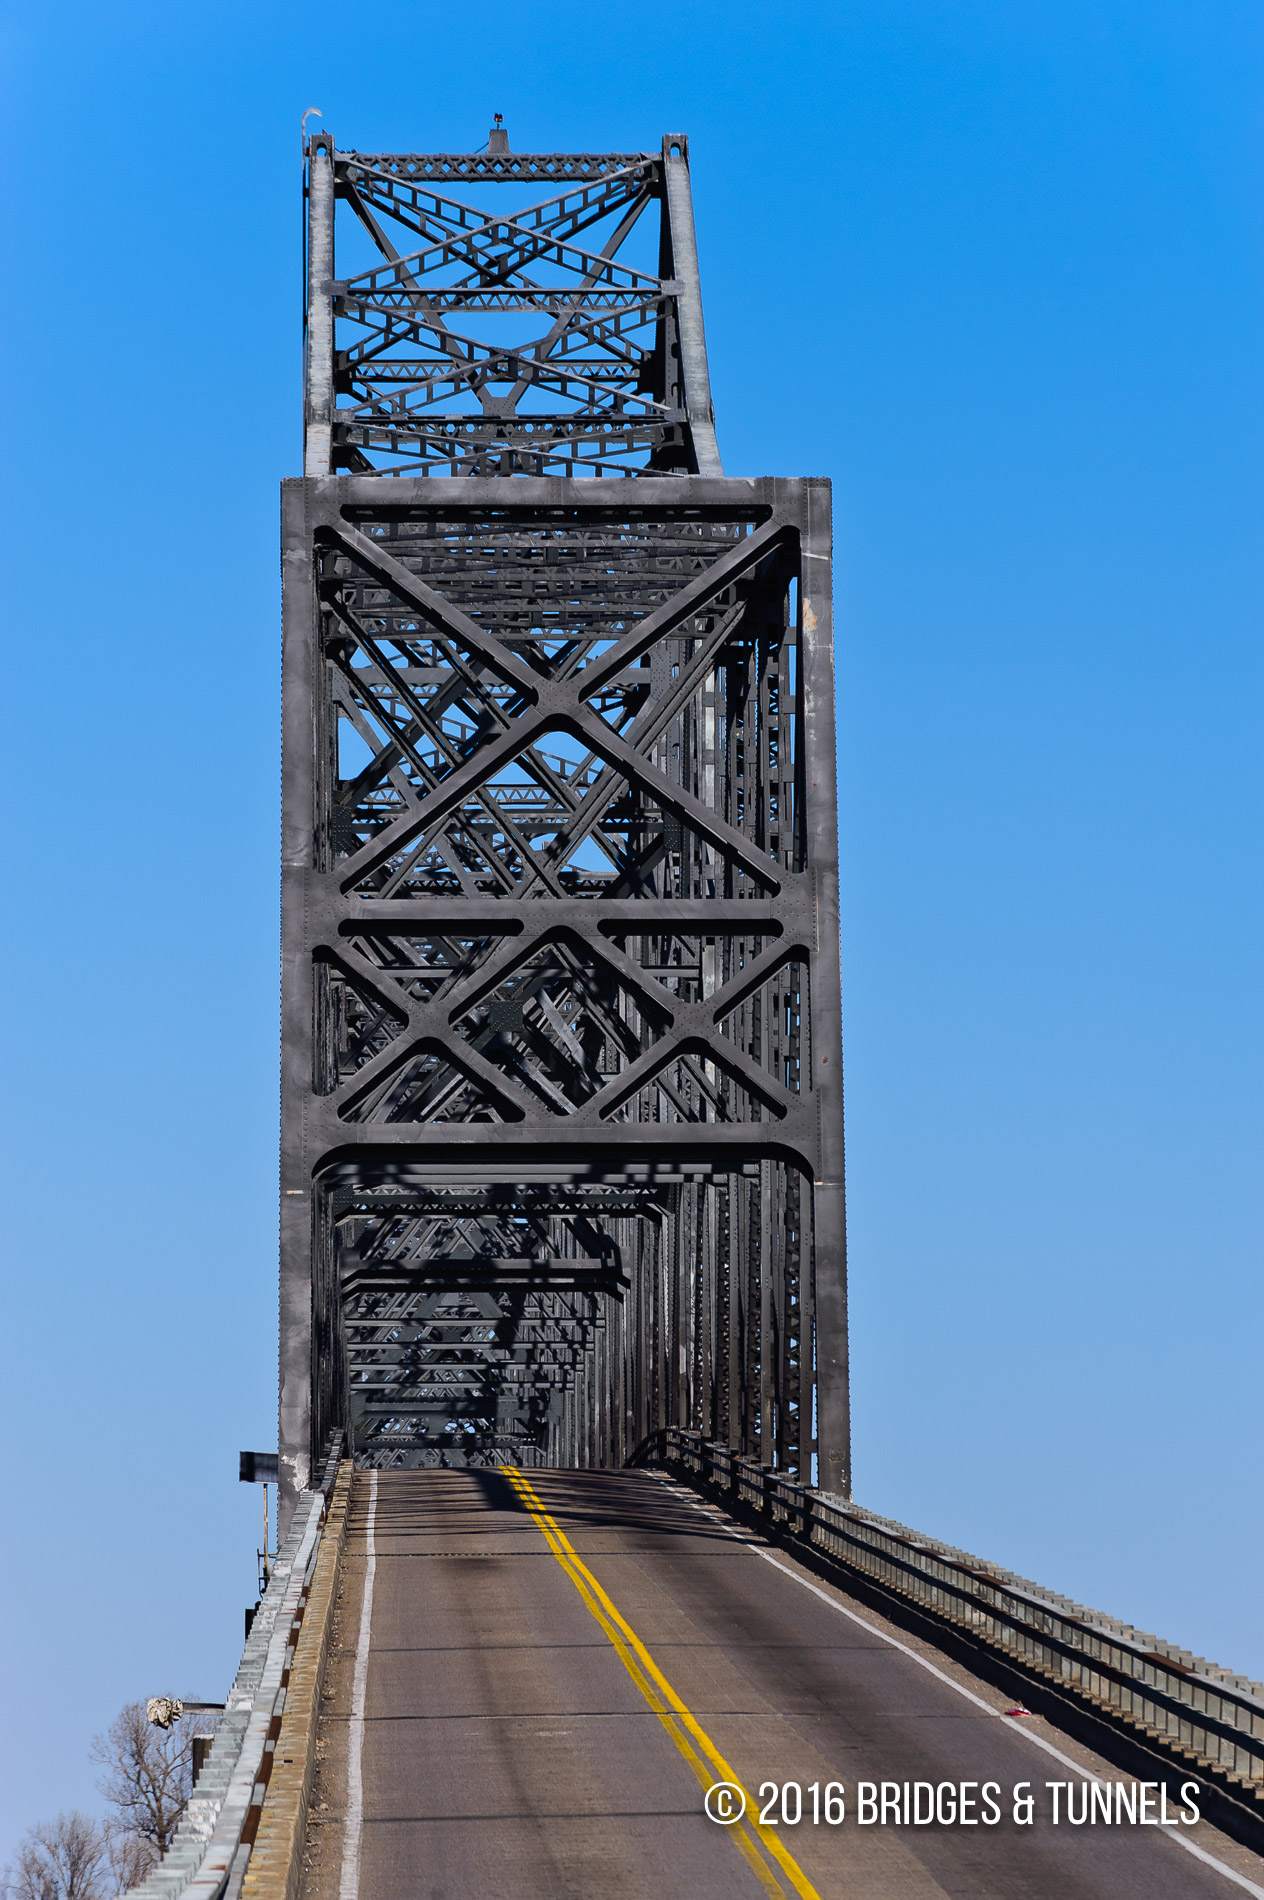 Cairo Bridge (US 51, 60 & 62)